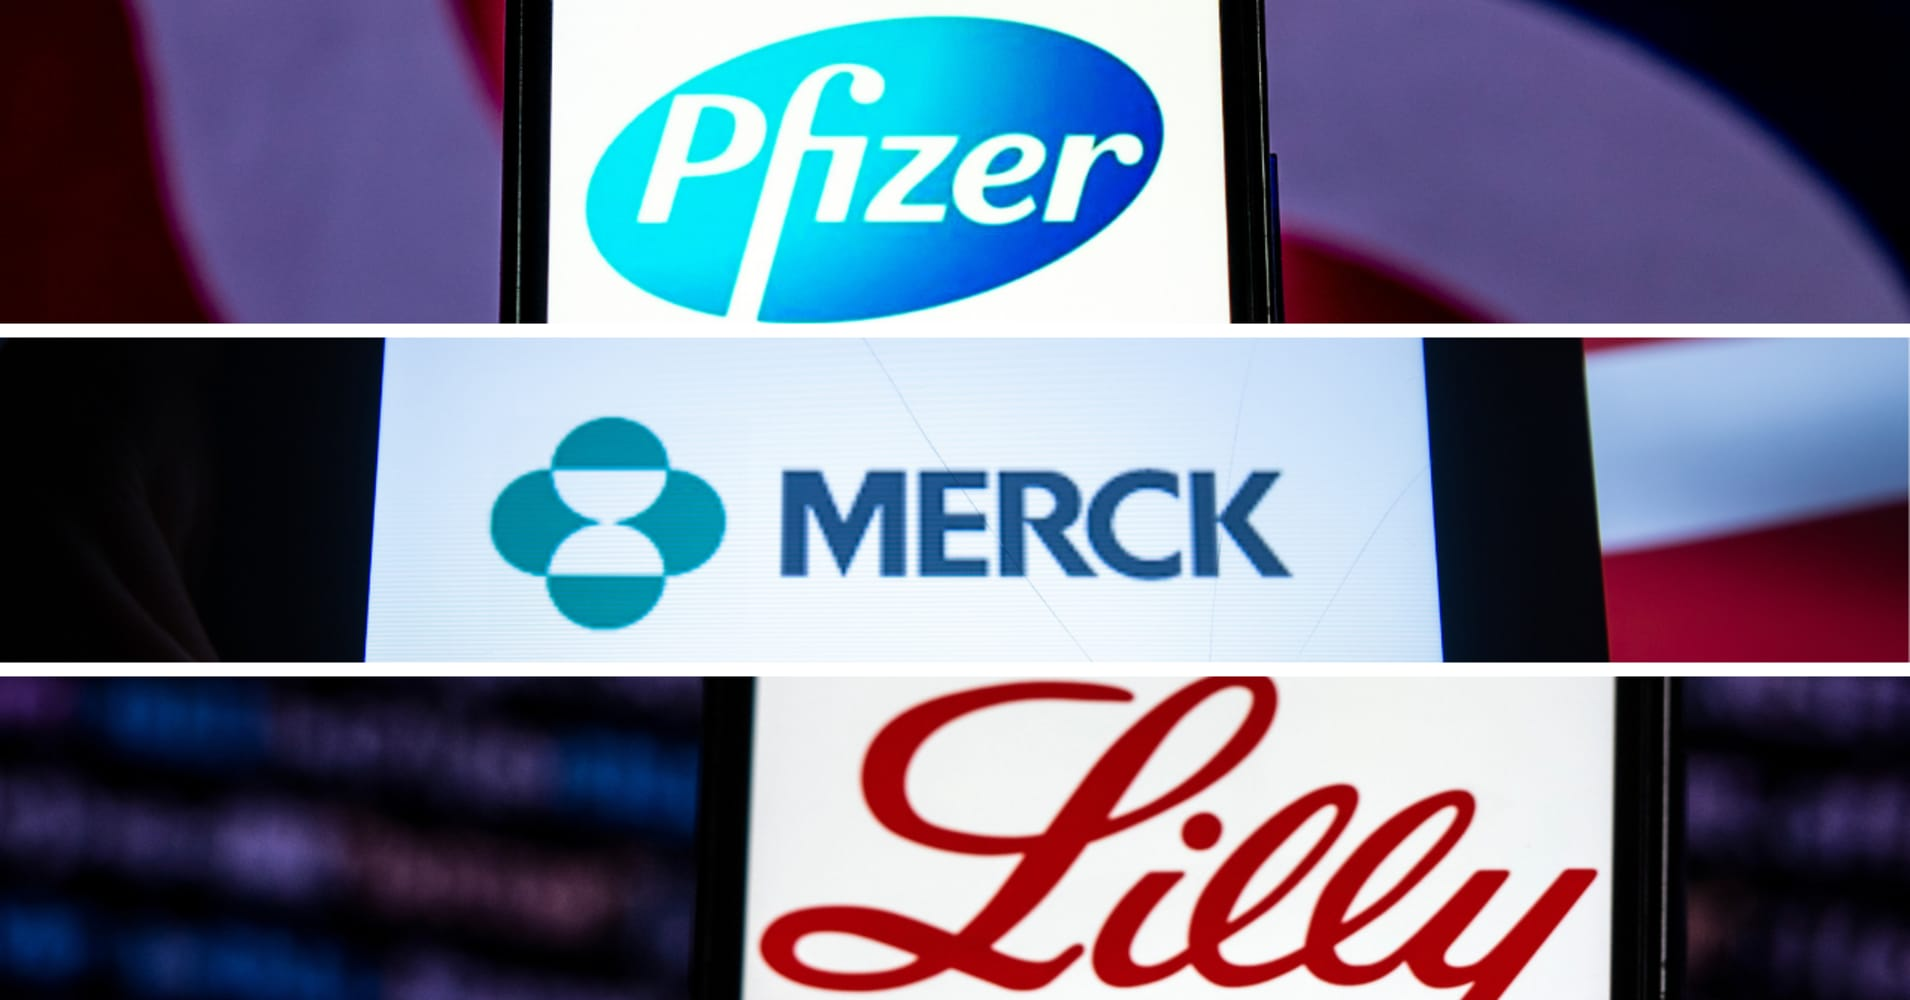 Here's a breakdown of Big Pharma earnings from Merck, Pfizer, Eli Lilly